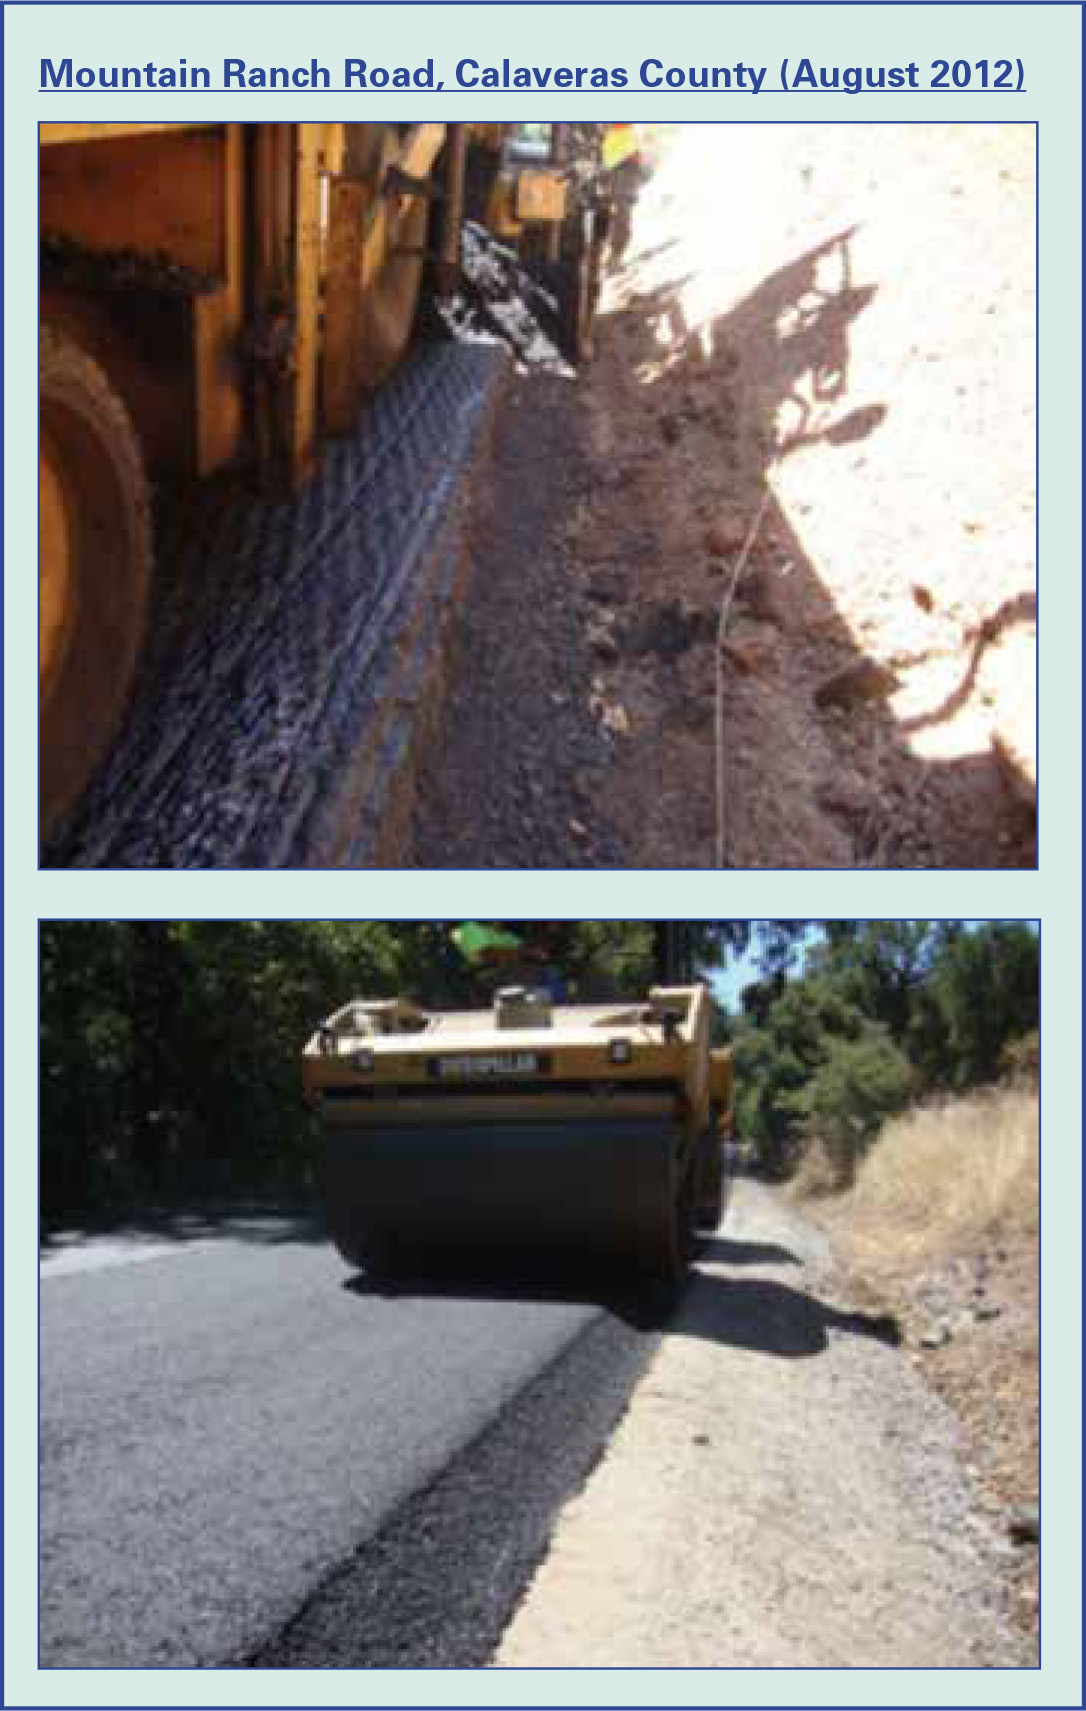 Figure 3: Mountain Ranch Road, Calaveras County (August 2012)